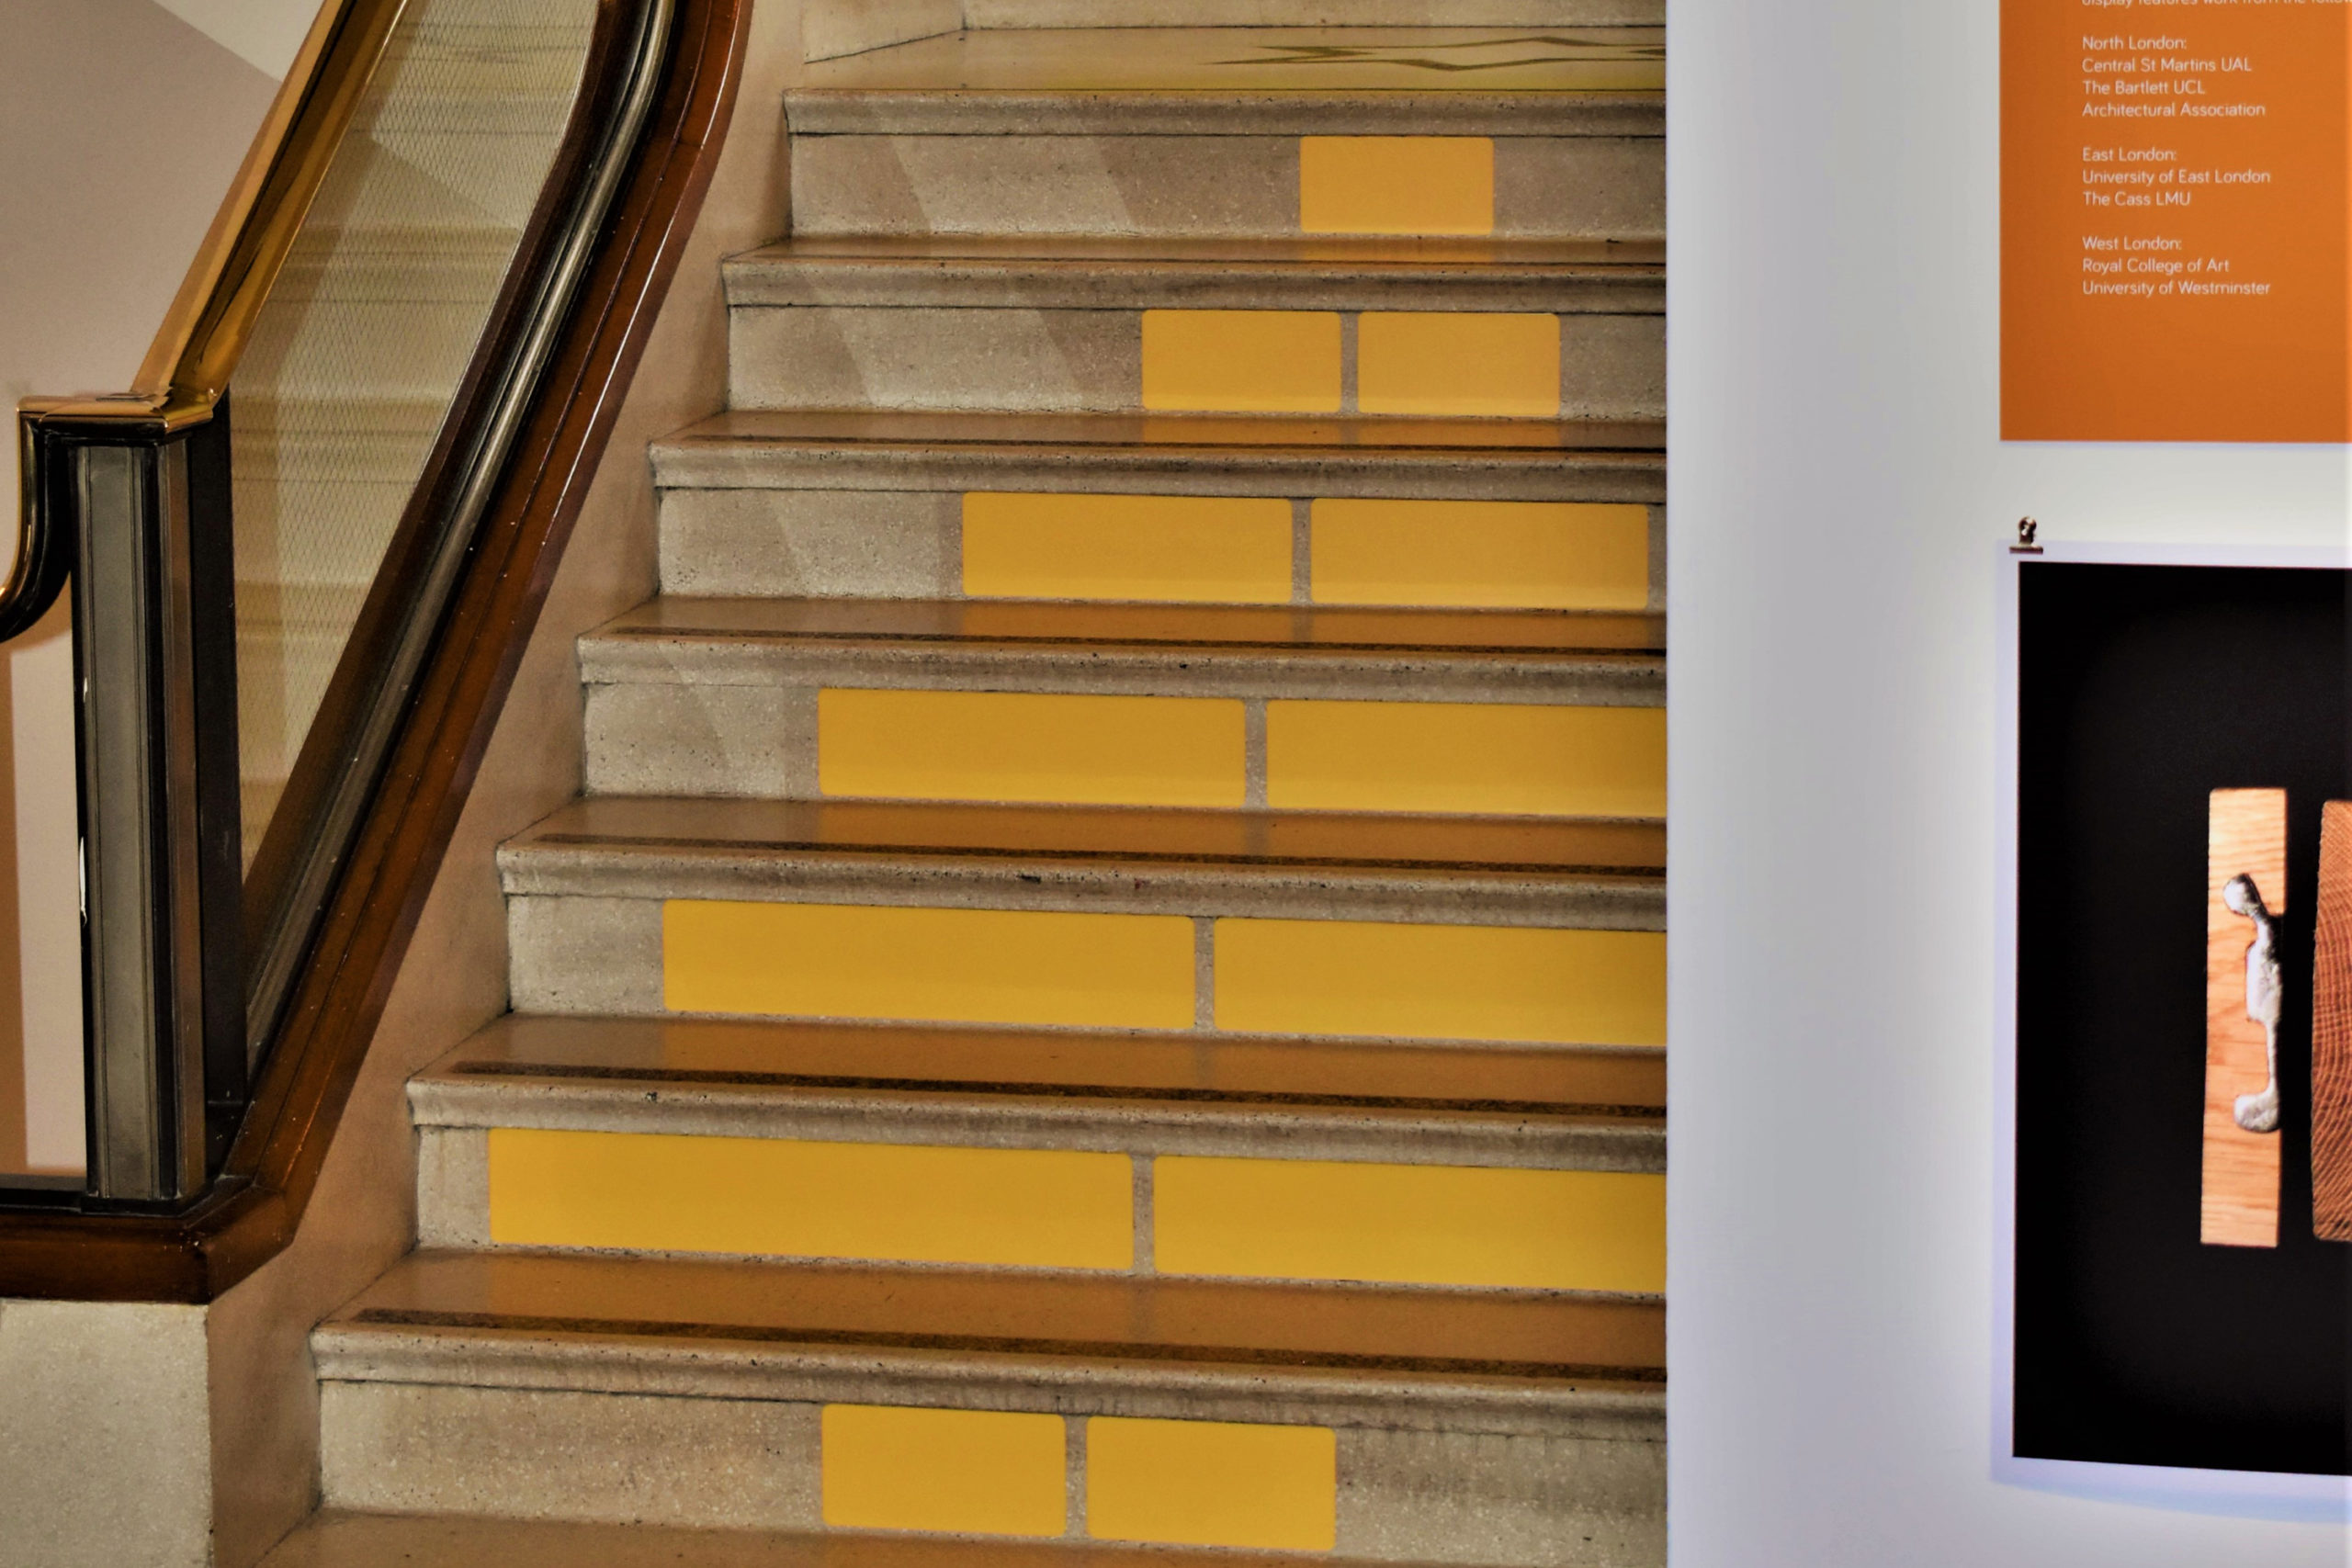 Stair colour coding